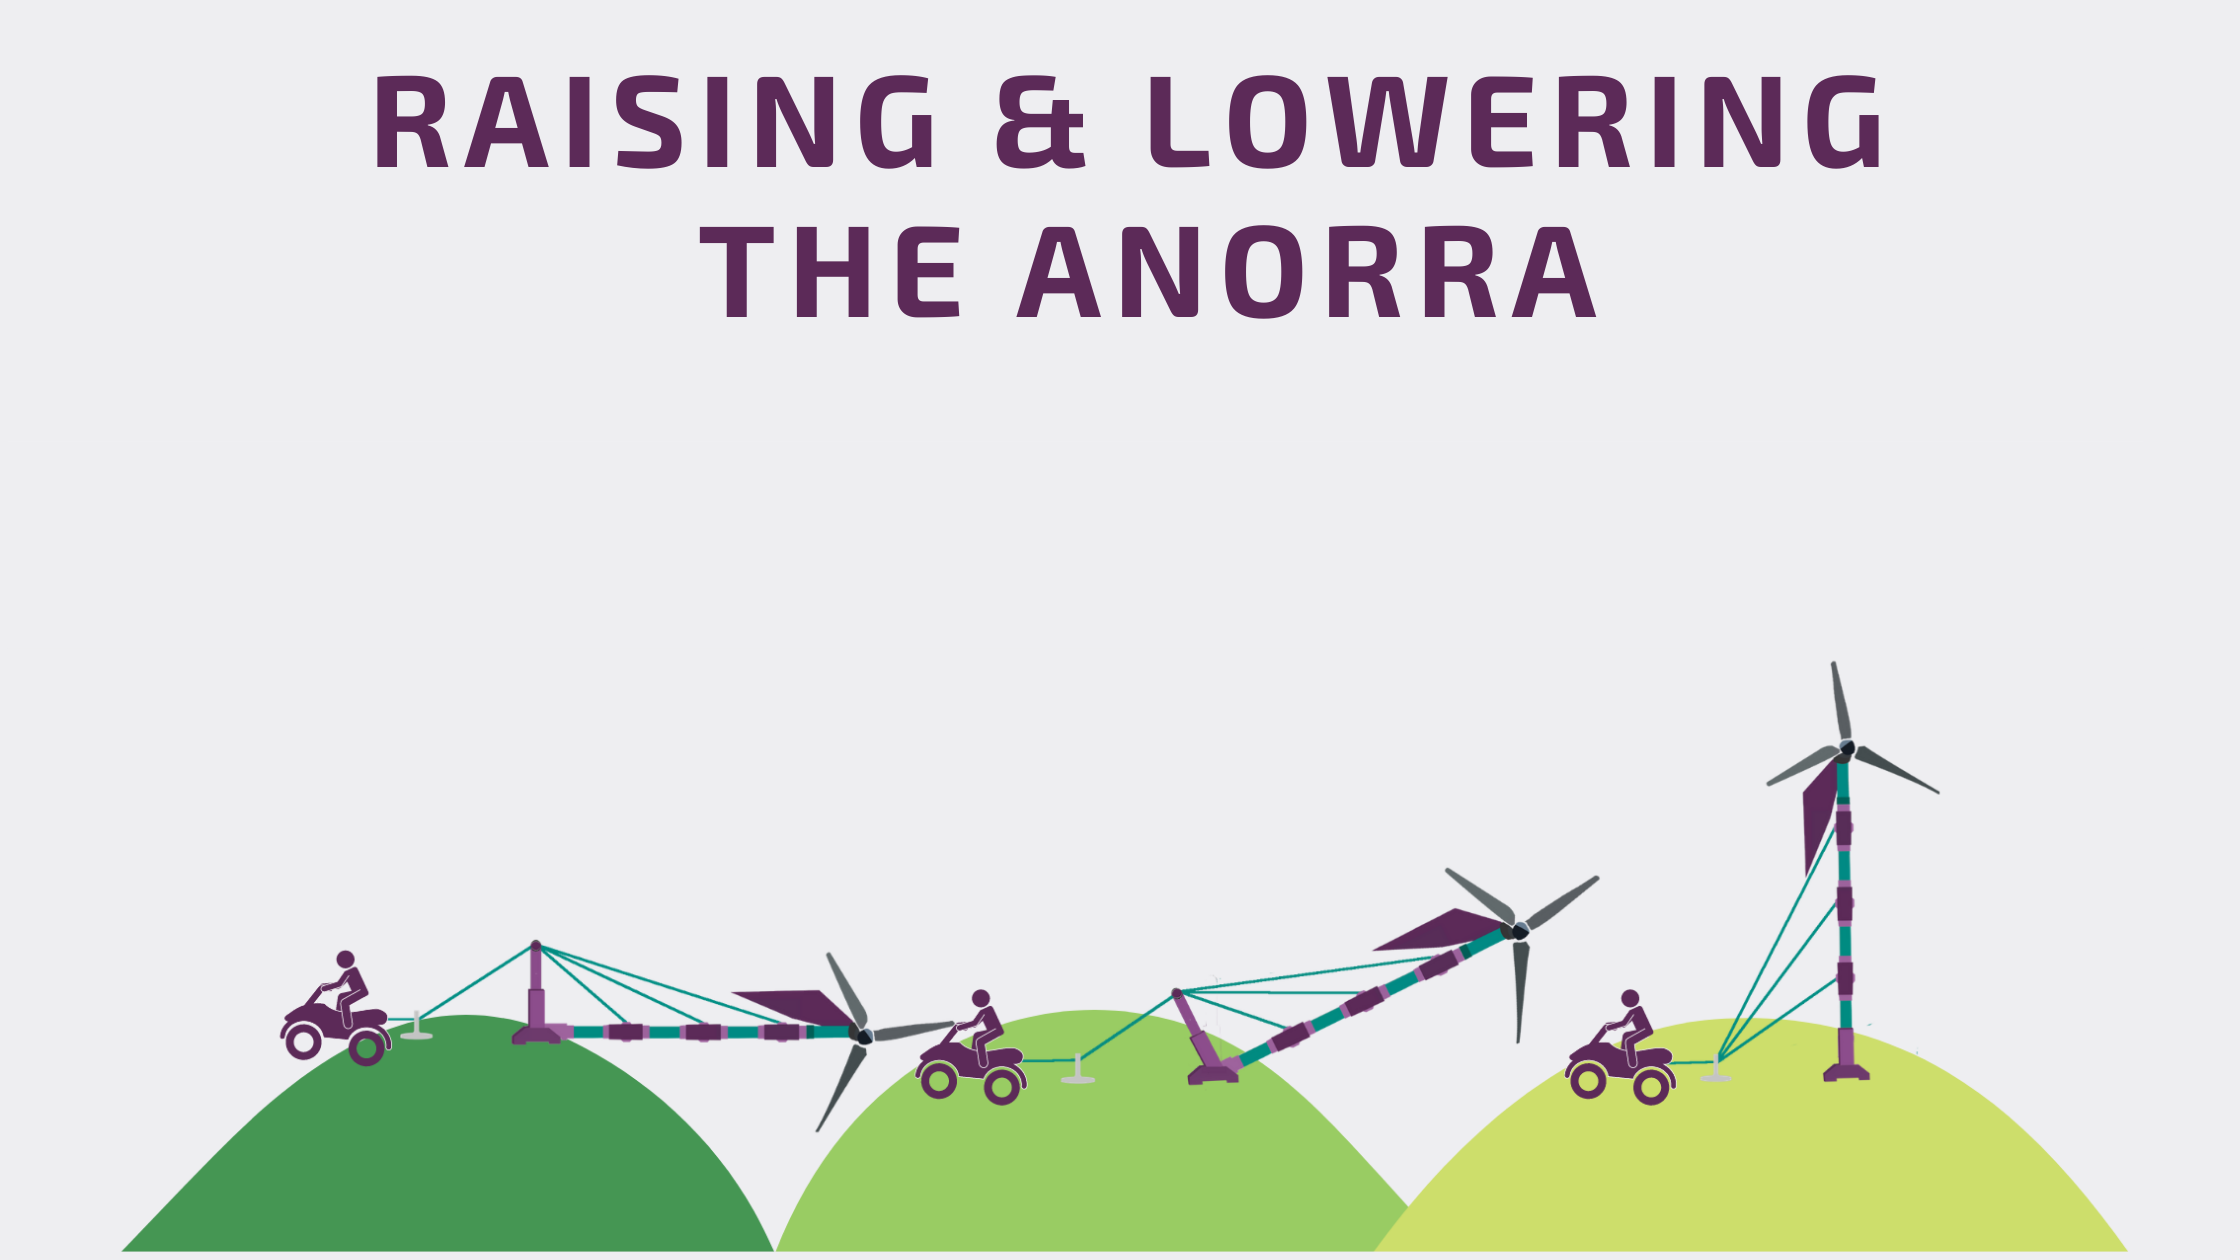 Raising & Lowering the Anorra